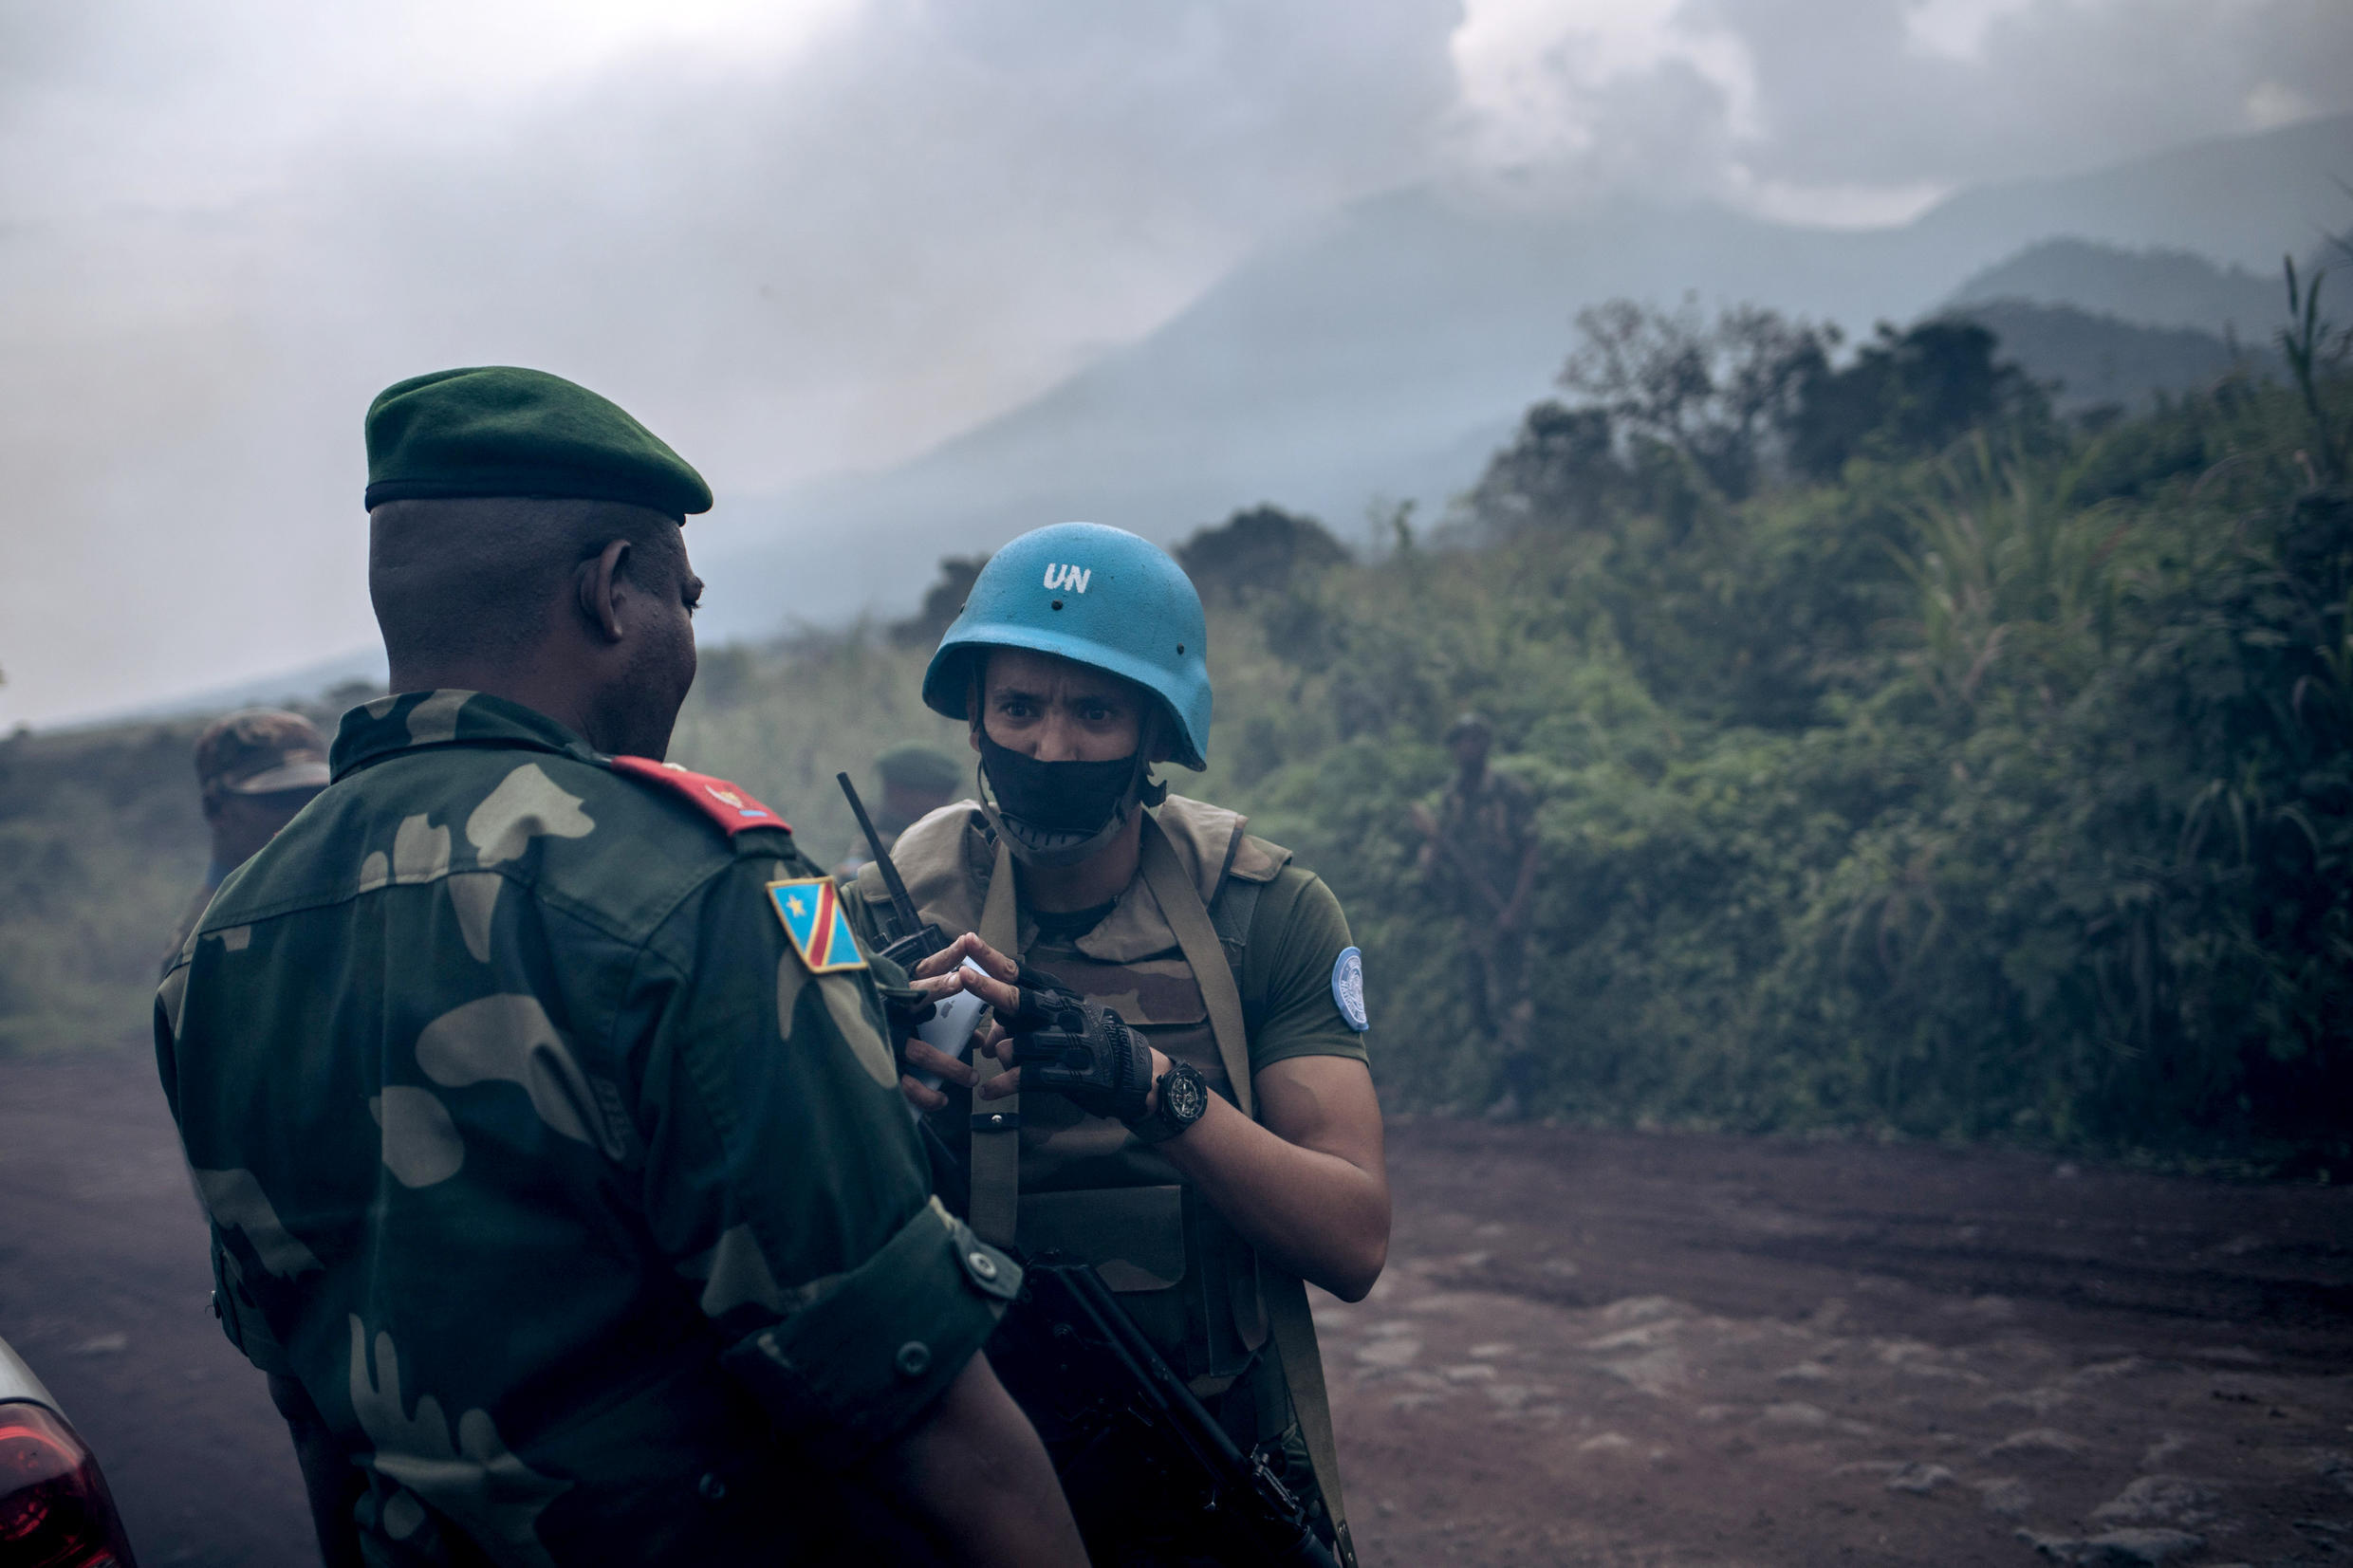 Congolese and UN forces secured the scene of the attack